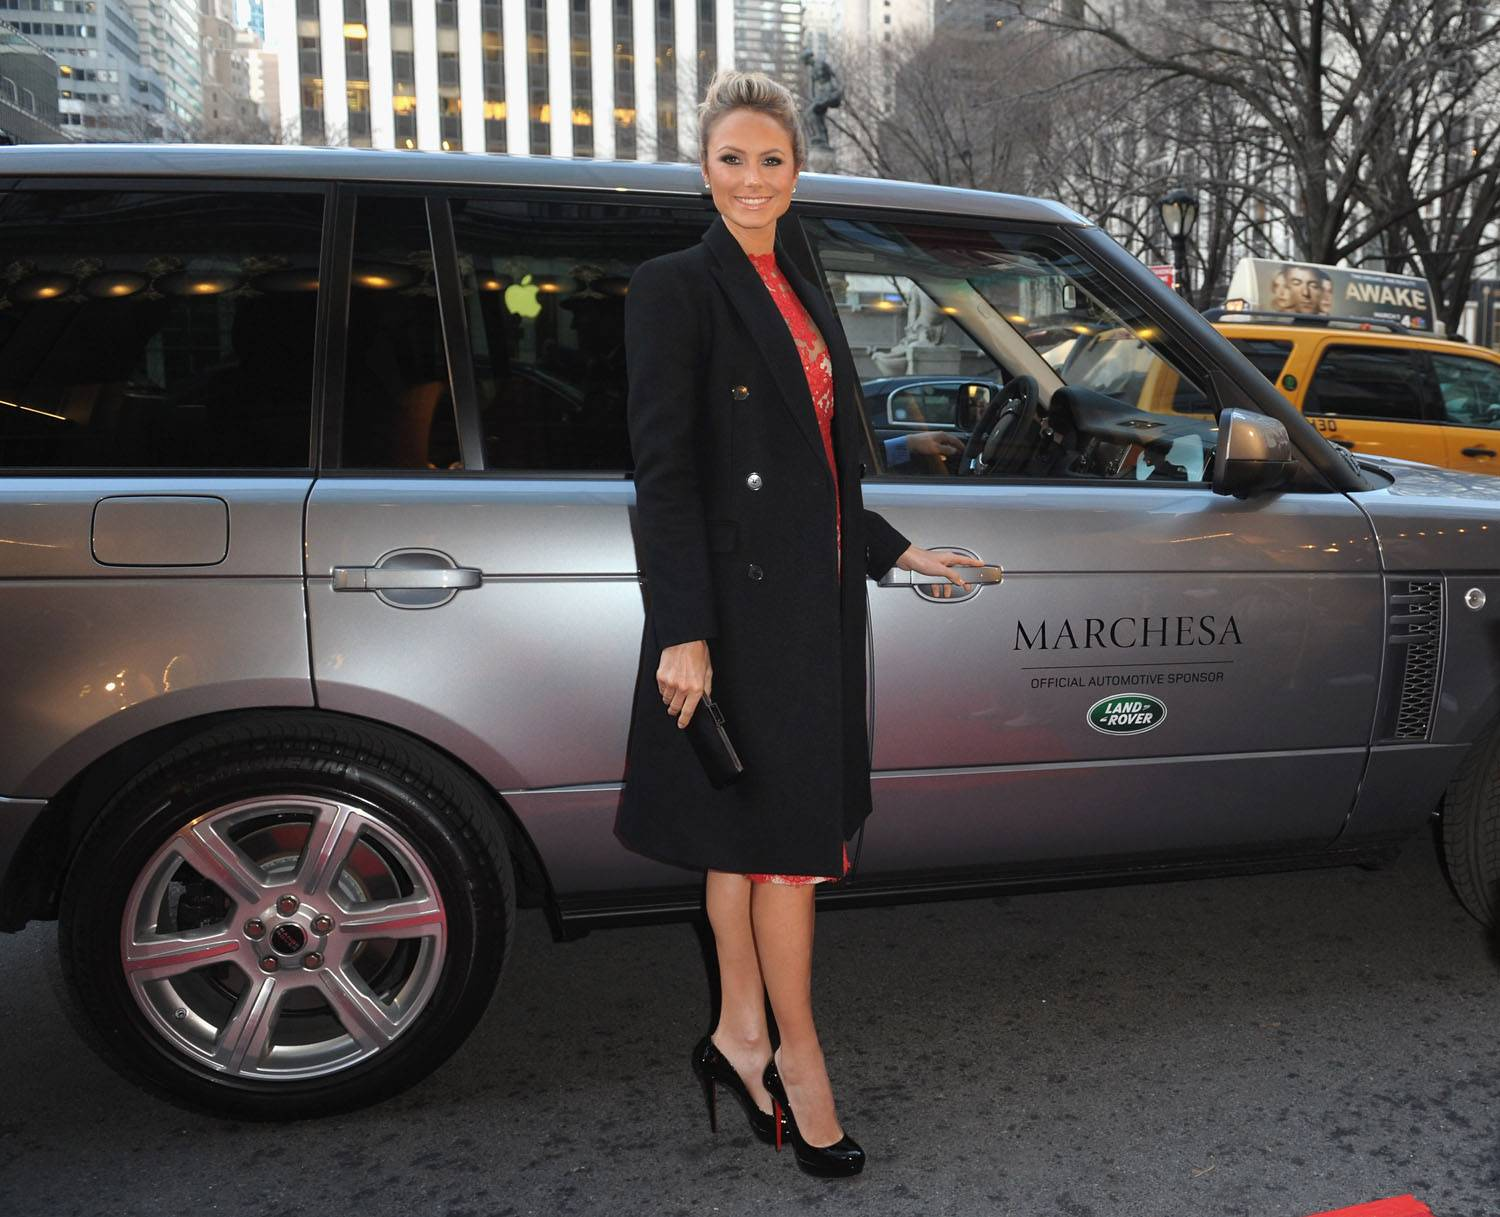 Land Rover Sponsors the Marchesa Fall 2012 Show Held at the Plaza